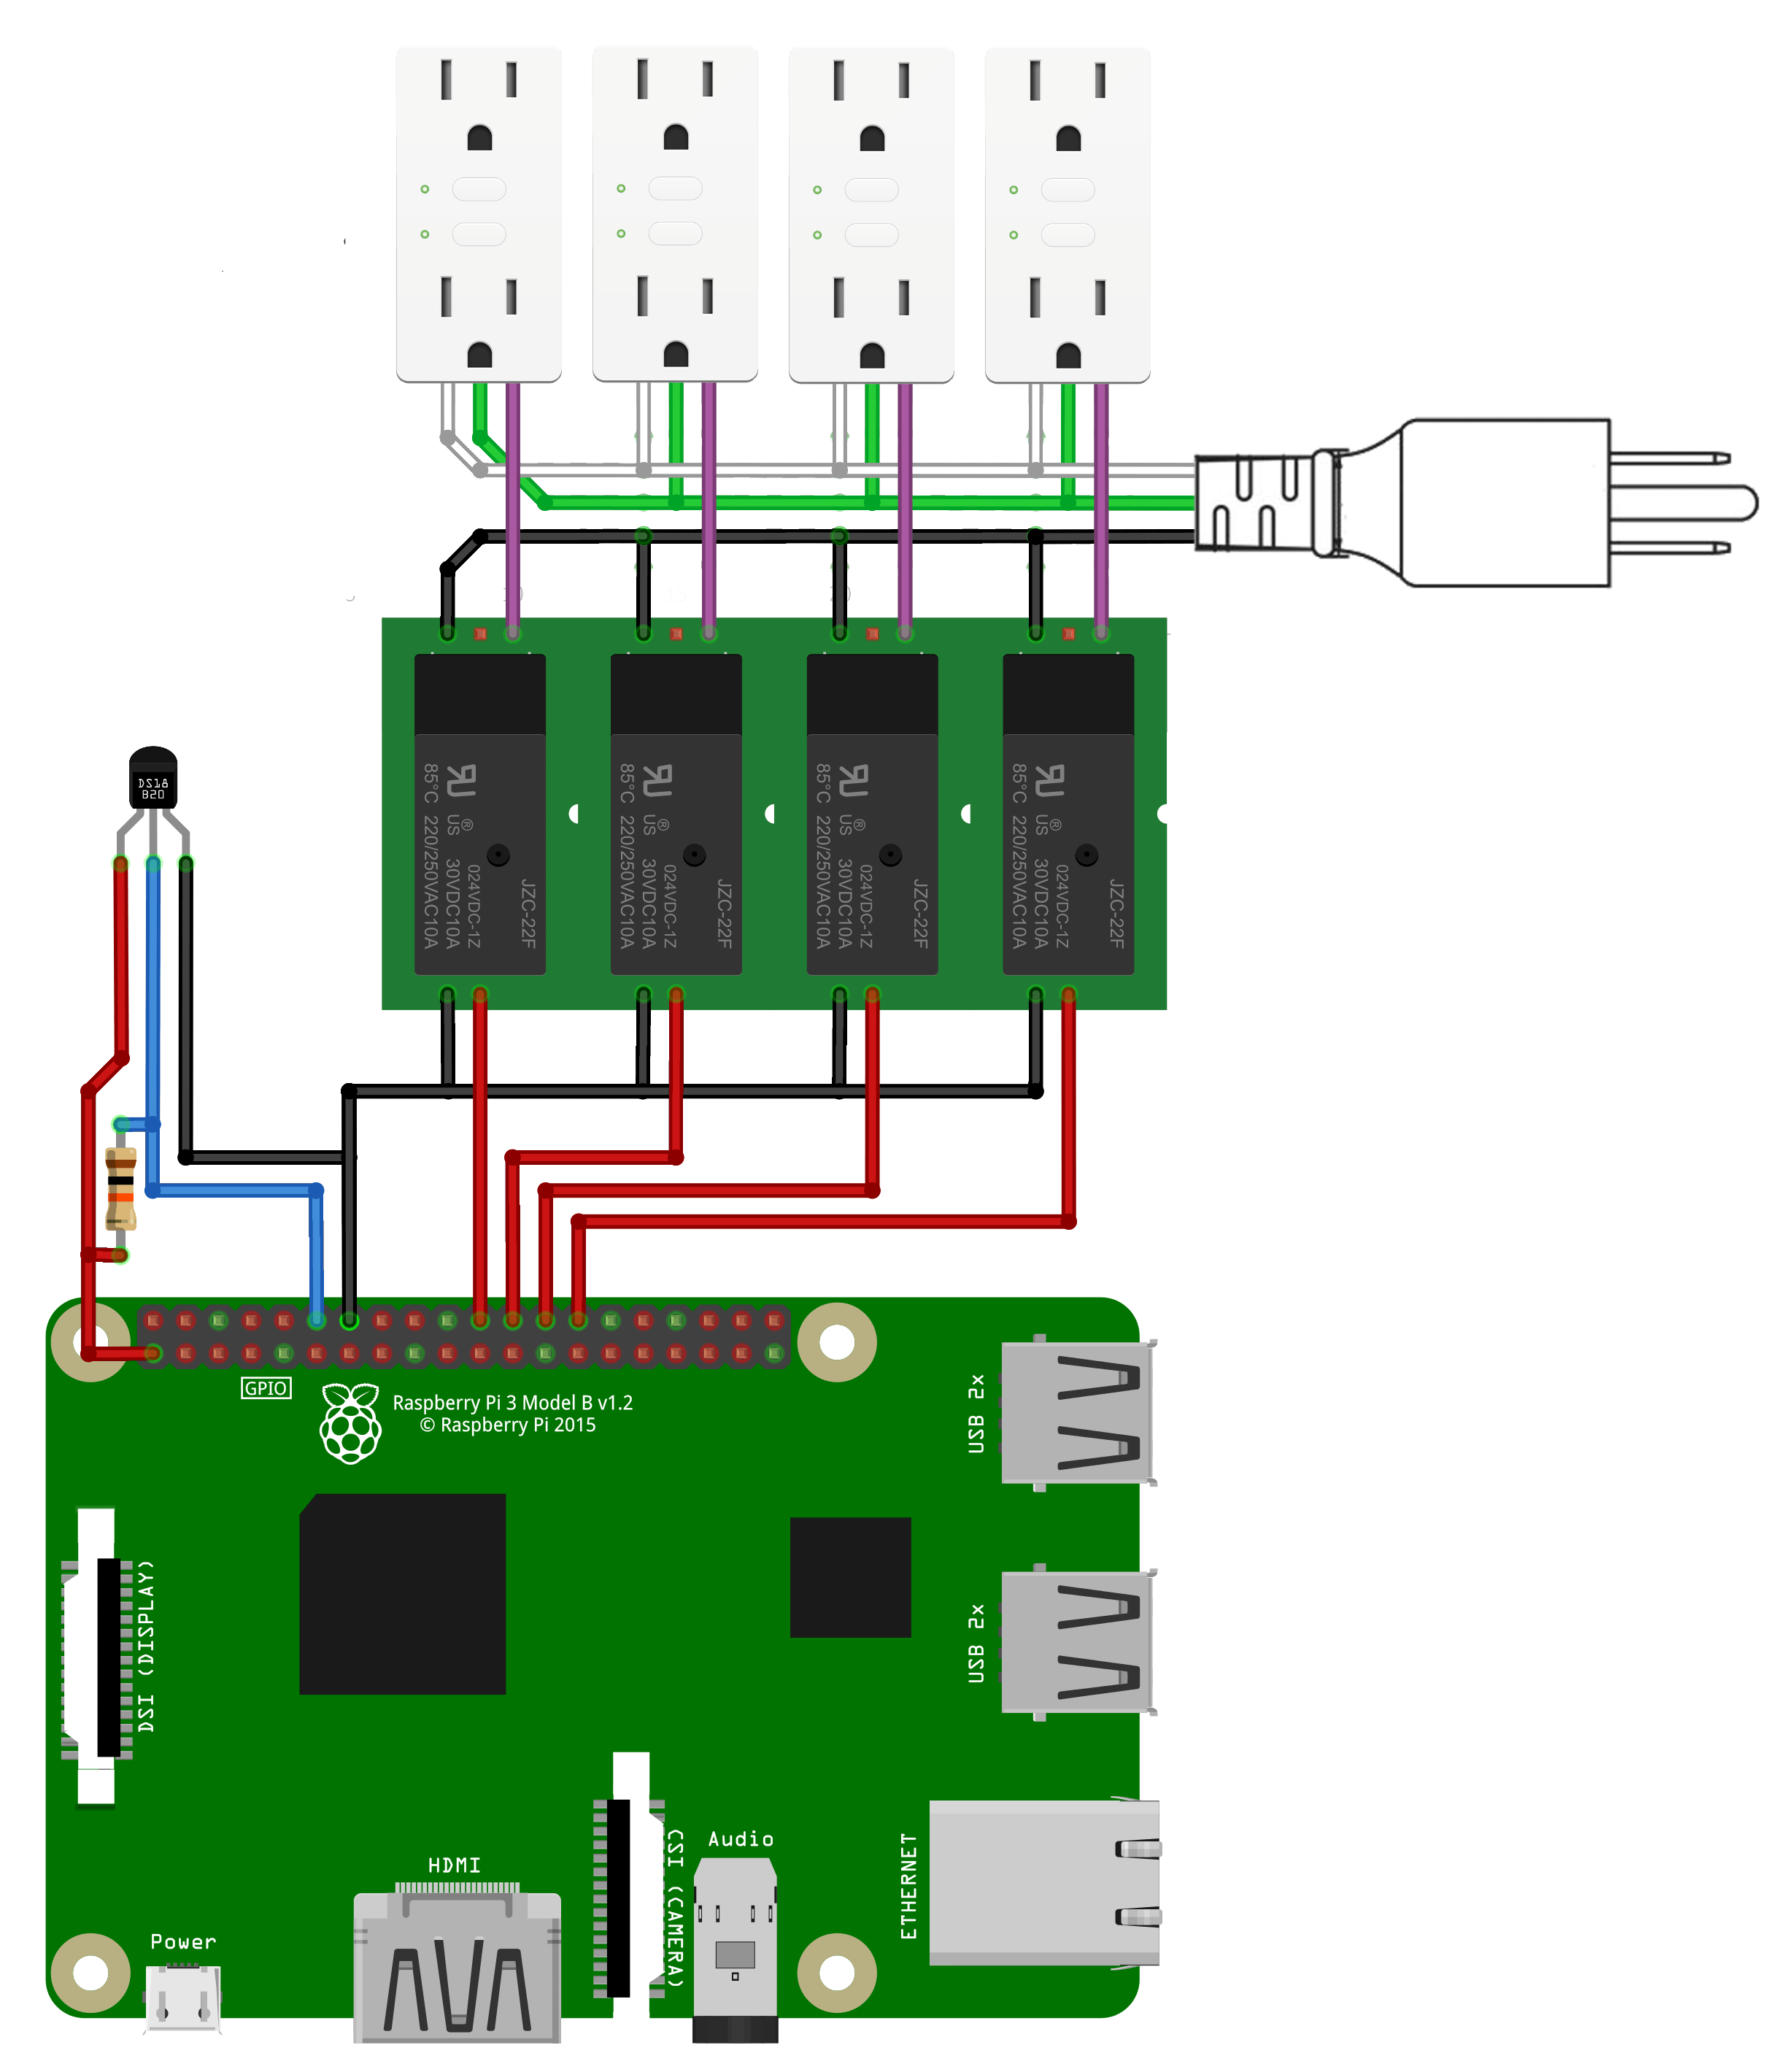 raspberry pi relay wiring diagram vy vz stereo instructions mycodo environmental regulation system